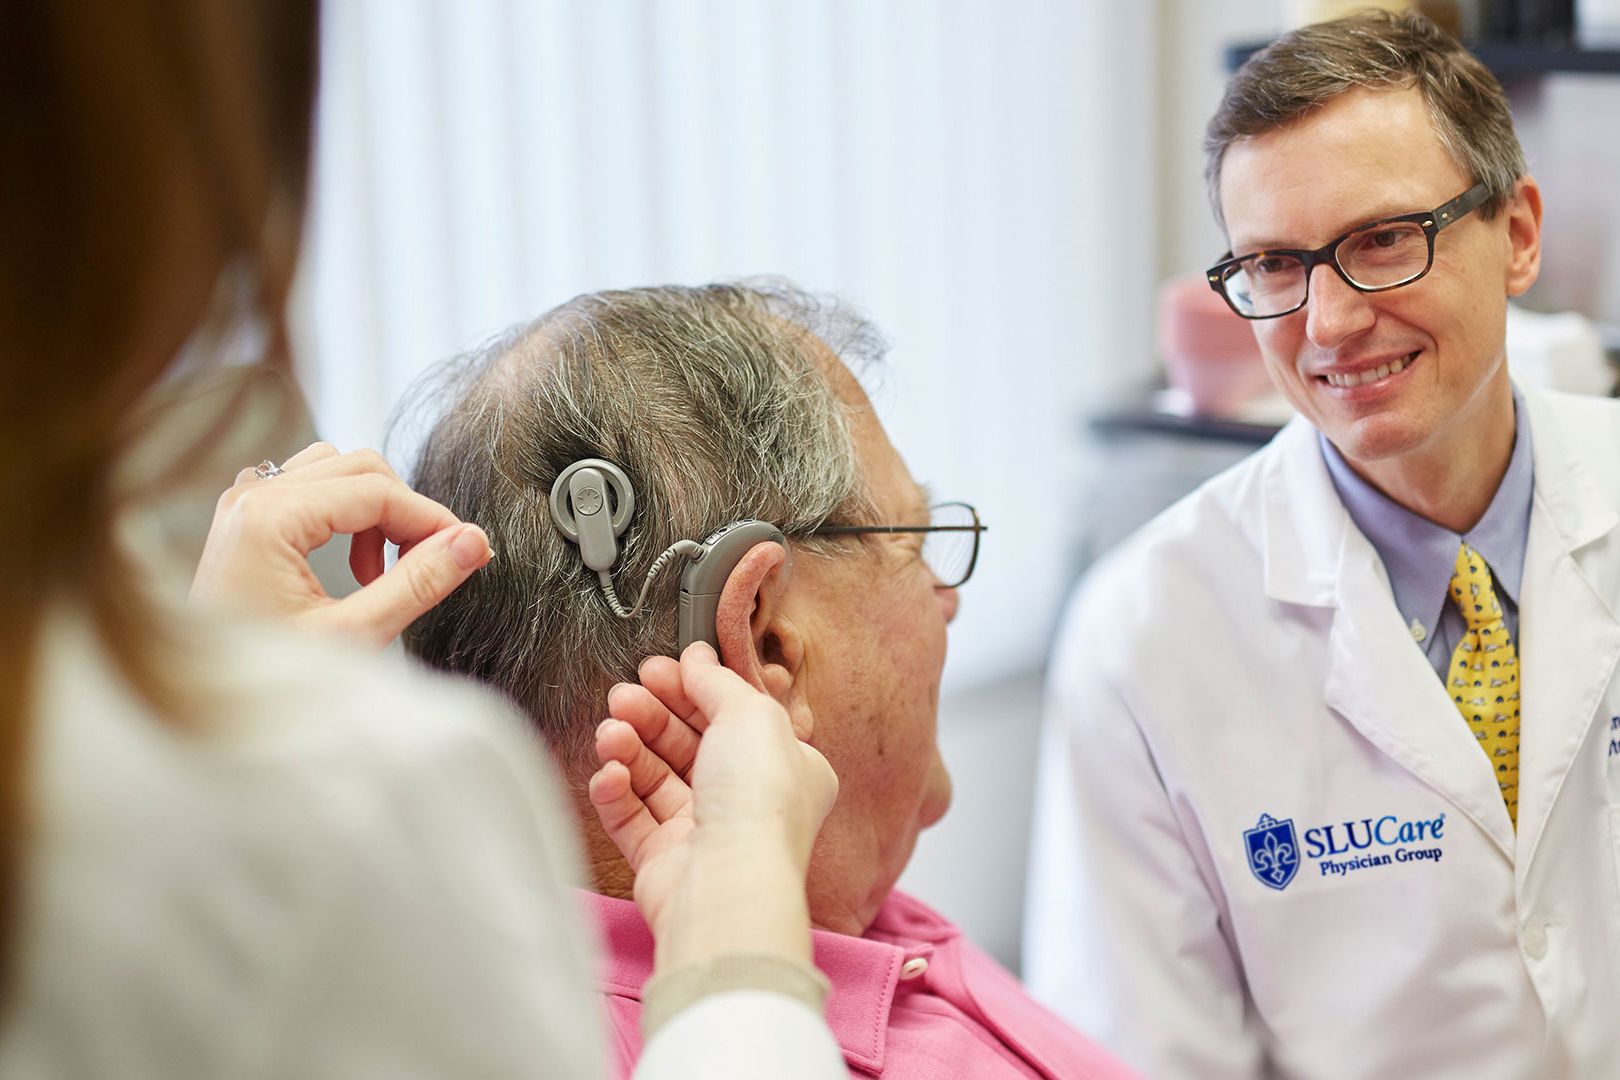 Adjusting patient's hearing aid.